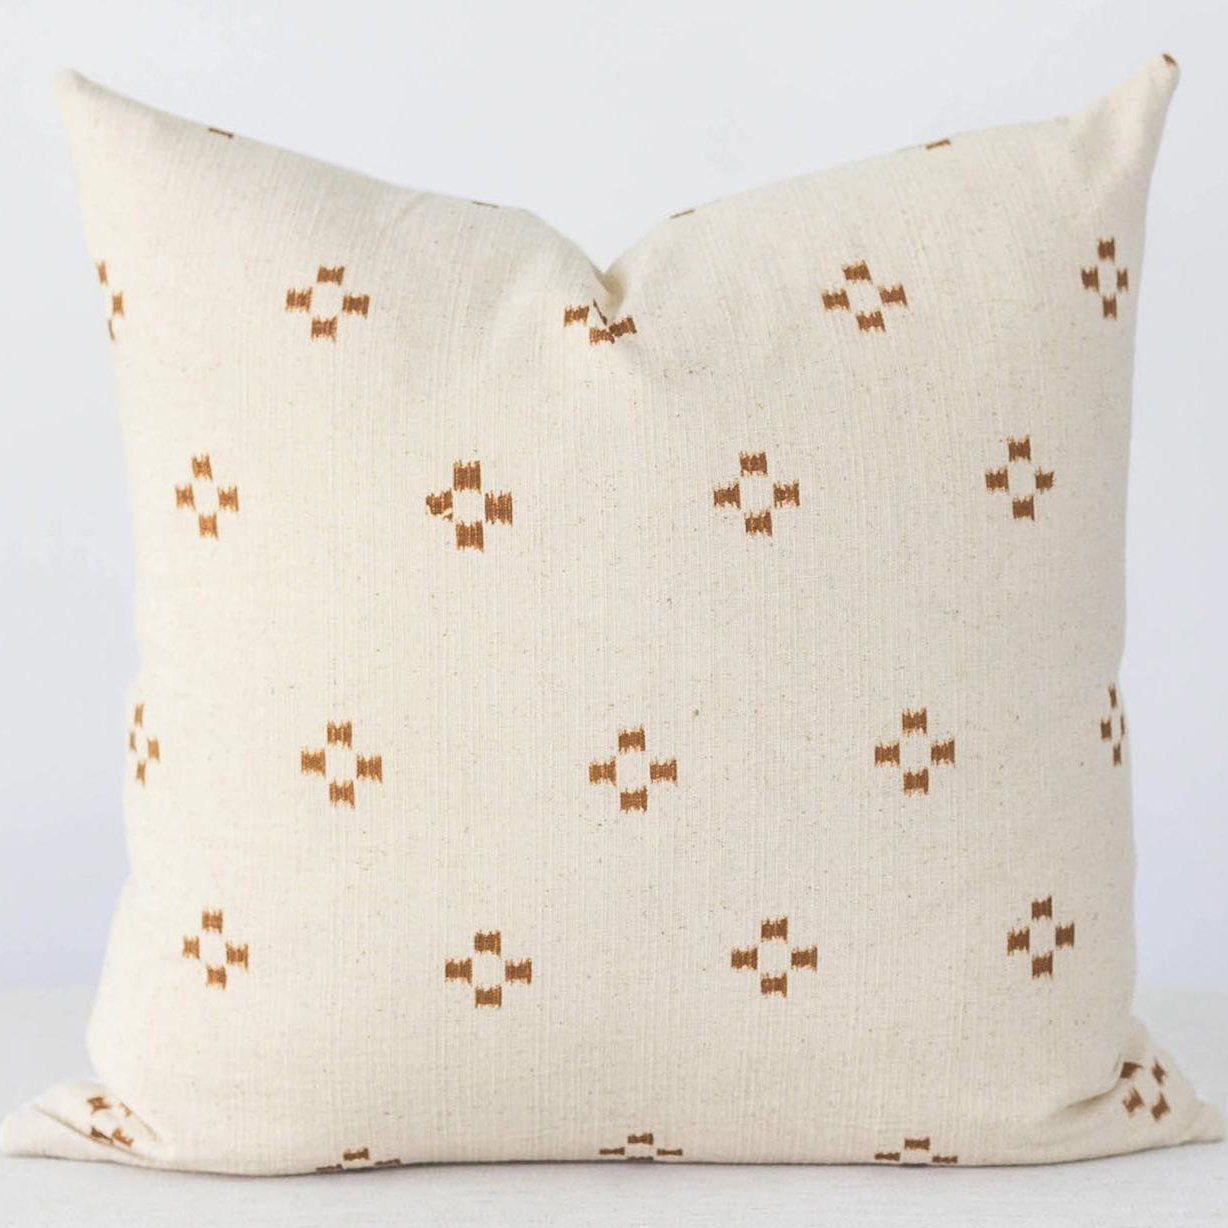 This boho inspired pillow cover is great all year round. The fabric is linen with a beautiful, soft texture. The front features a light cream with a dark orange/rust color for the pattern. Handmade in Texas!FEATURES✾ Cream colored fabric with rust pattern.✾ Pure white cotton canvas fabric on the back.✾ Zipper closure for easy removal. ✾ Made to order, ships in 5 to 7 business days. ✾ Insert NOT included. For best results we recommend spot cleaning and hand washing only.